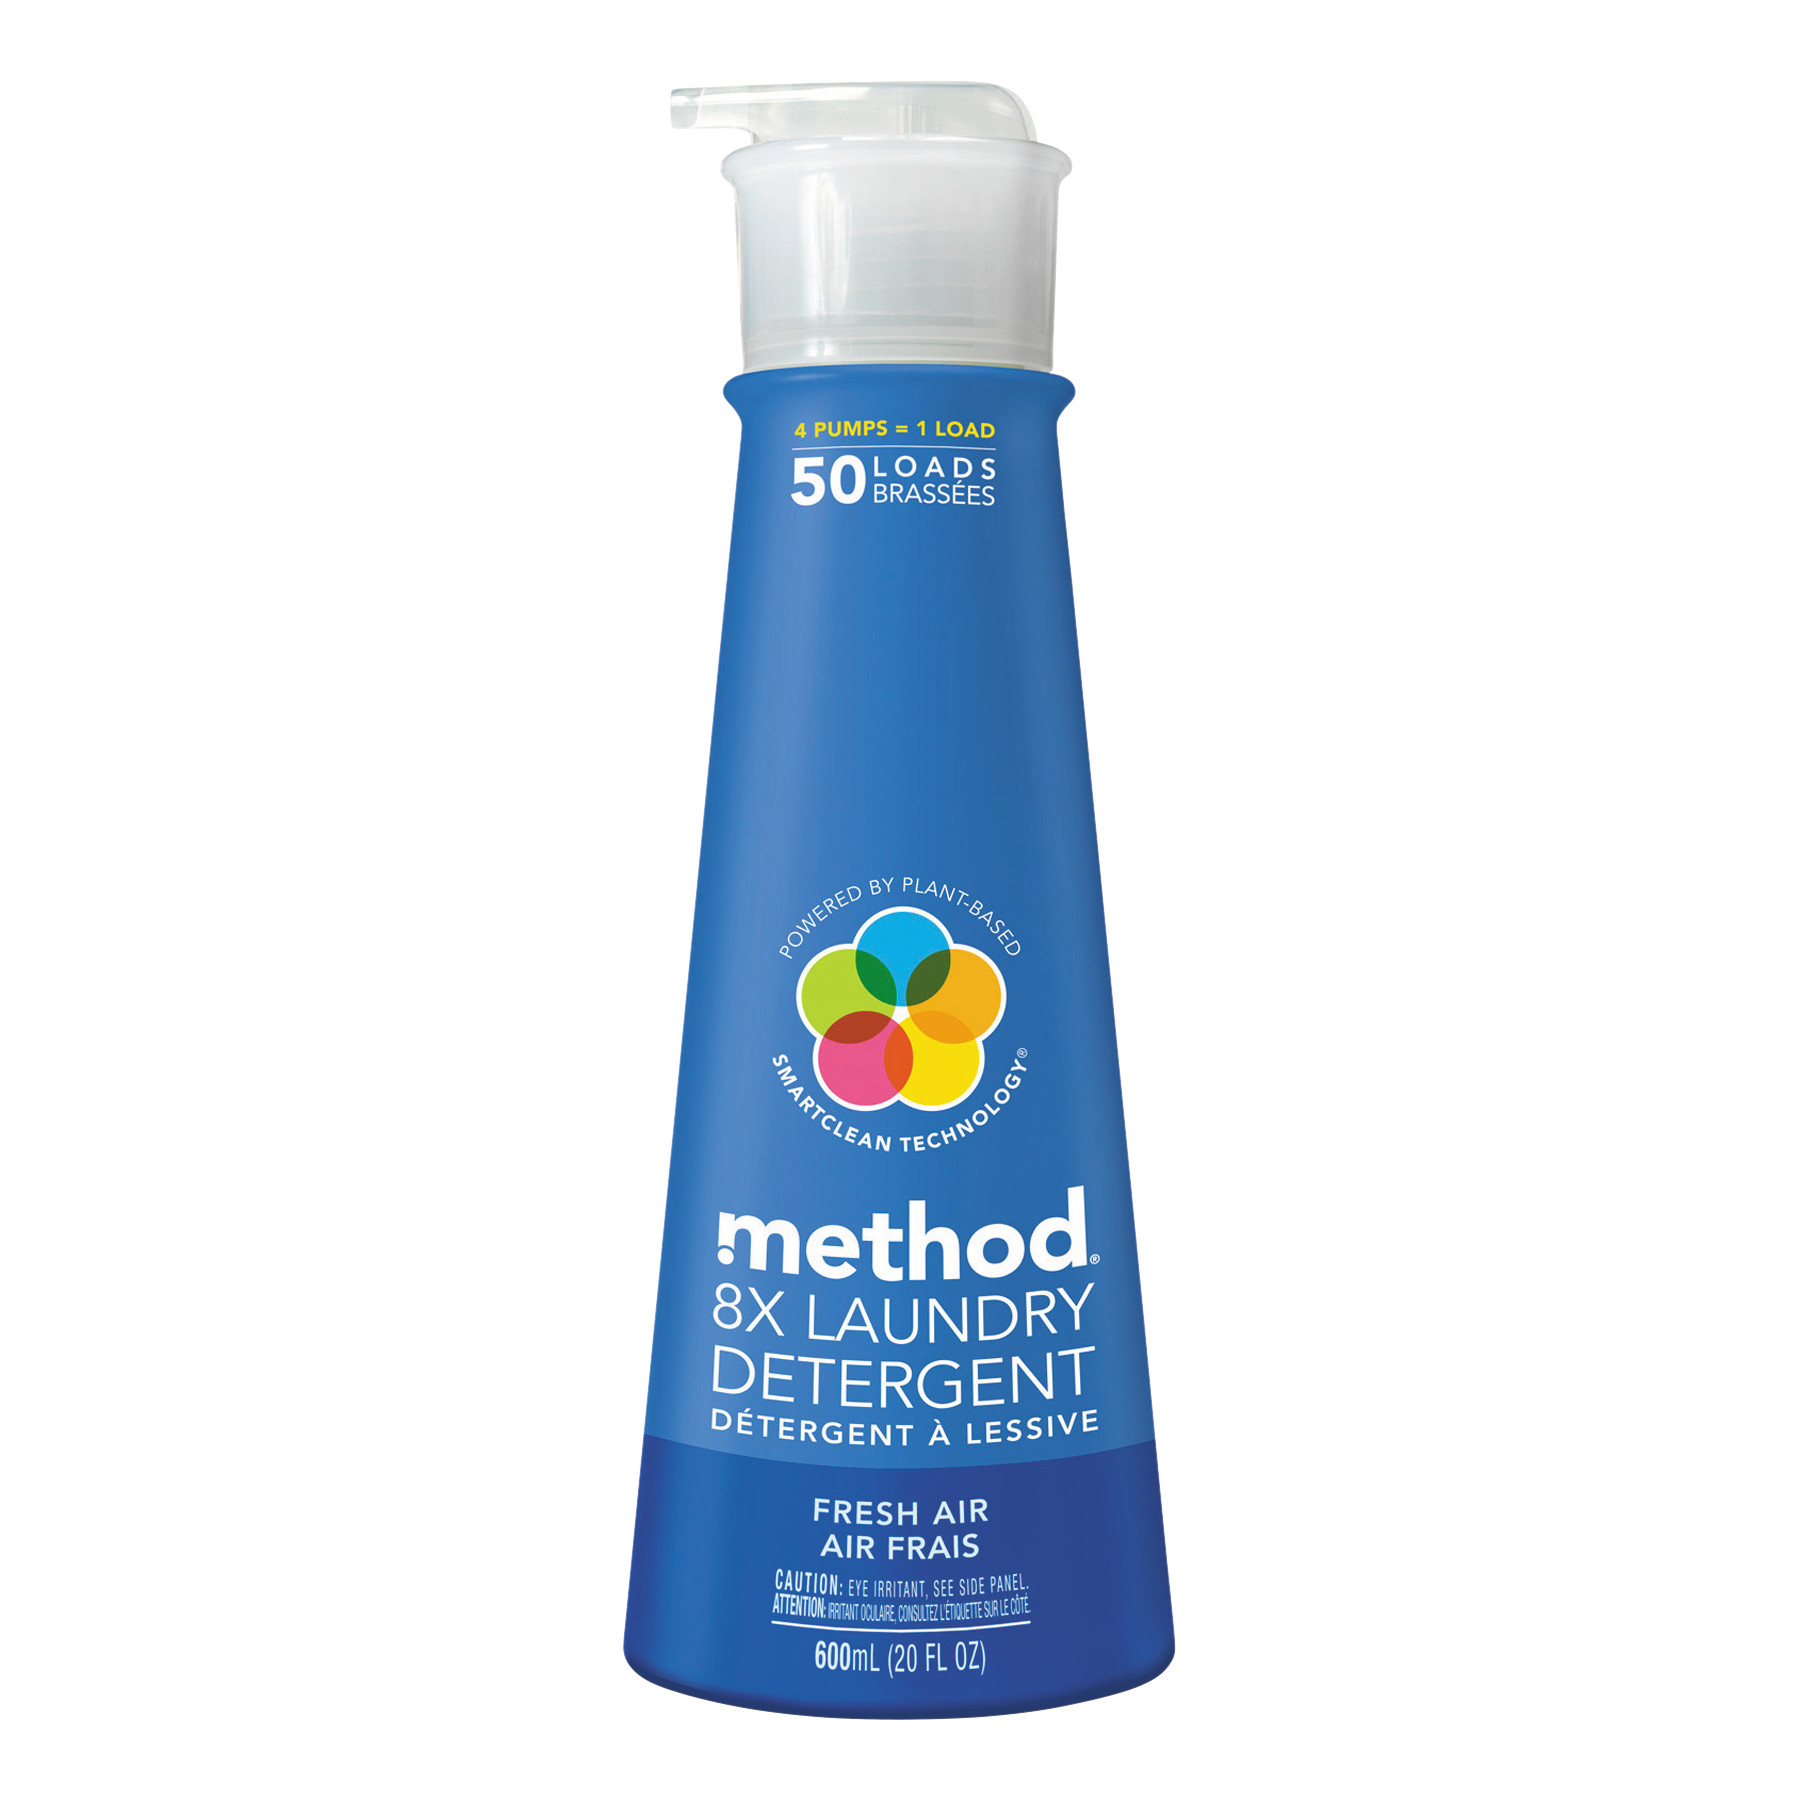 Method 8X Laundry Detergent, Fresh Air, 20 oz Bottle, 6/Carton